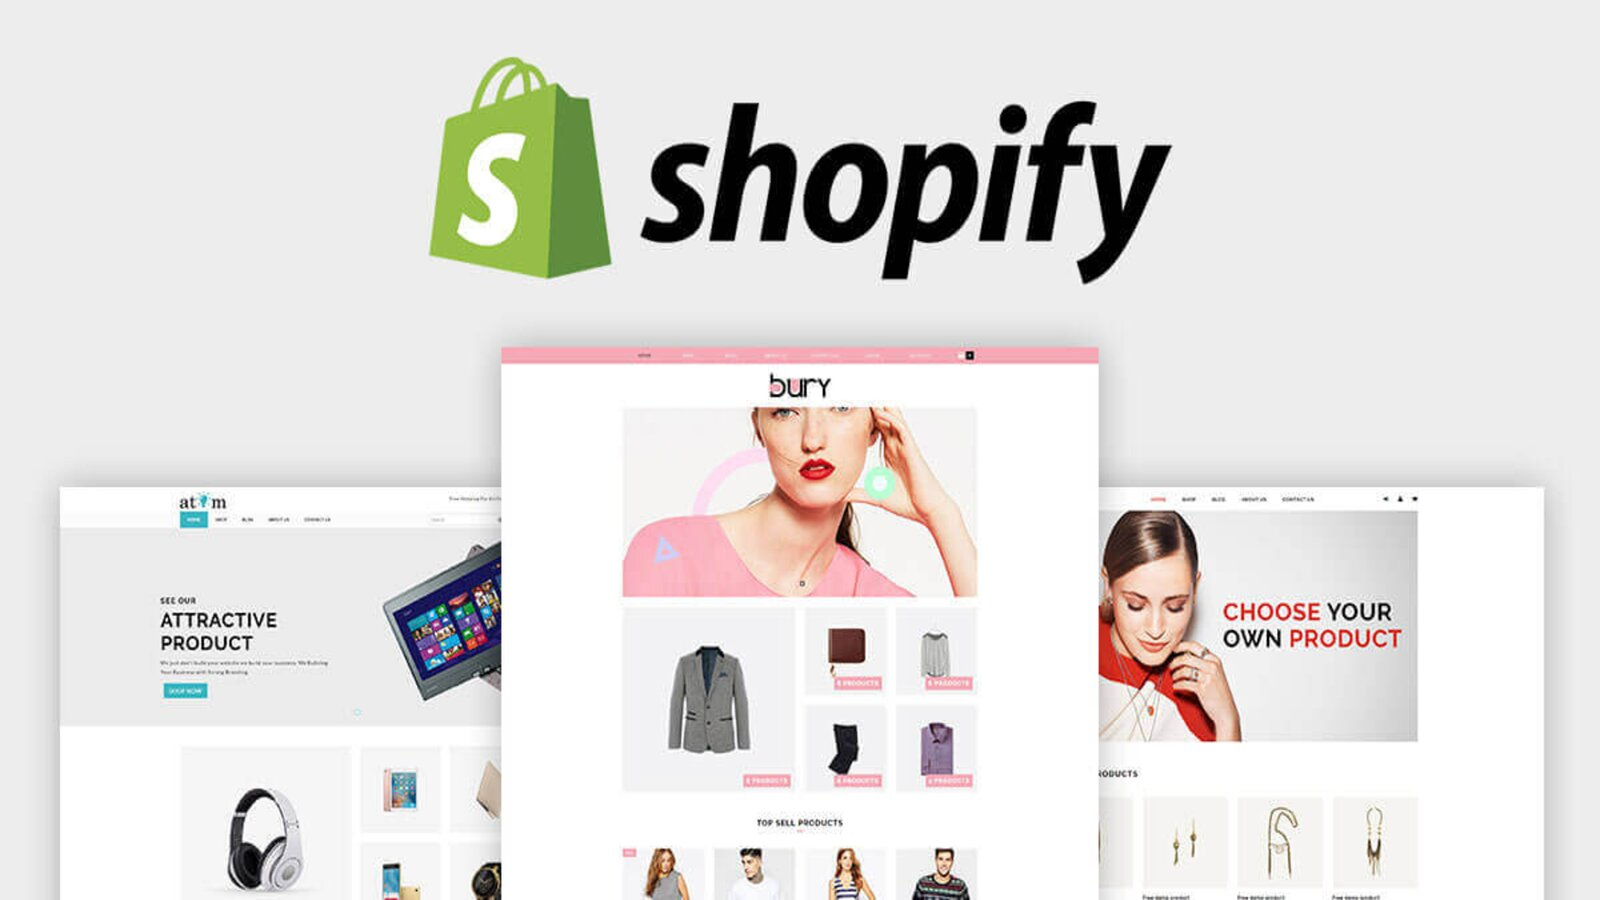 Want to Promote Your Shopify Store with Ads? Consider These 9 Alternatives First